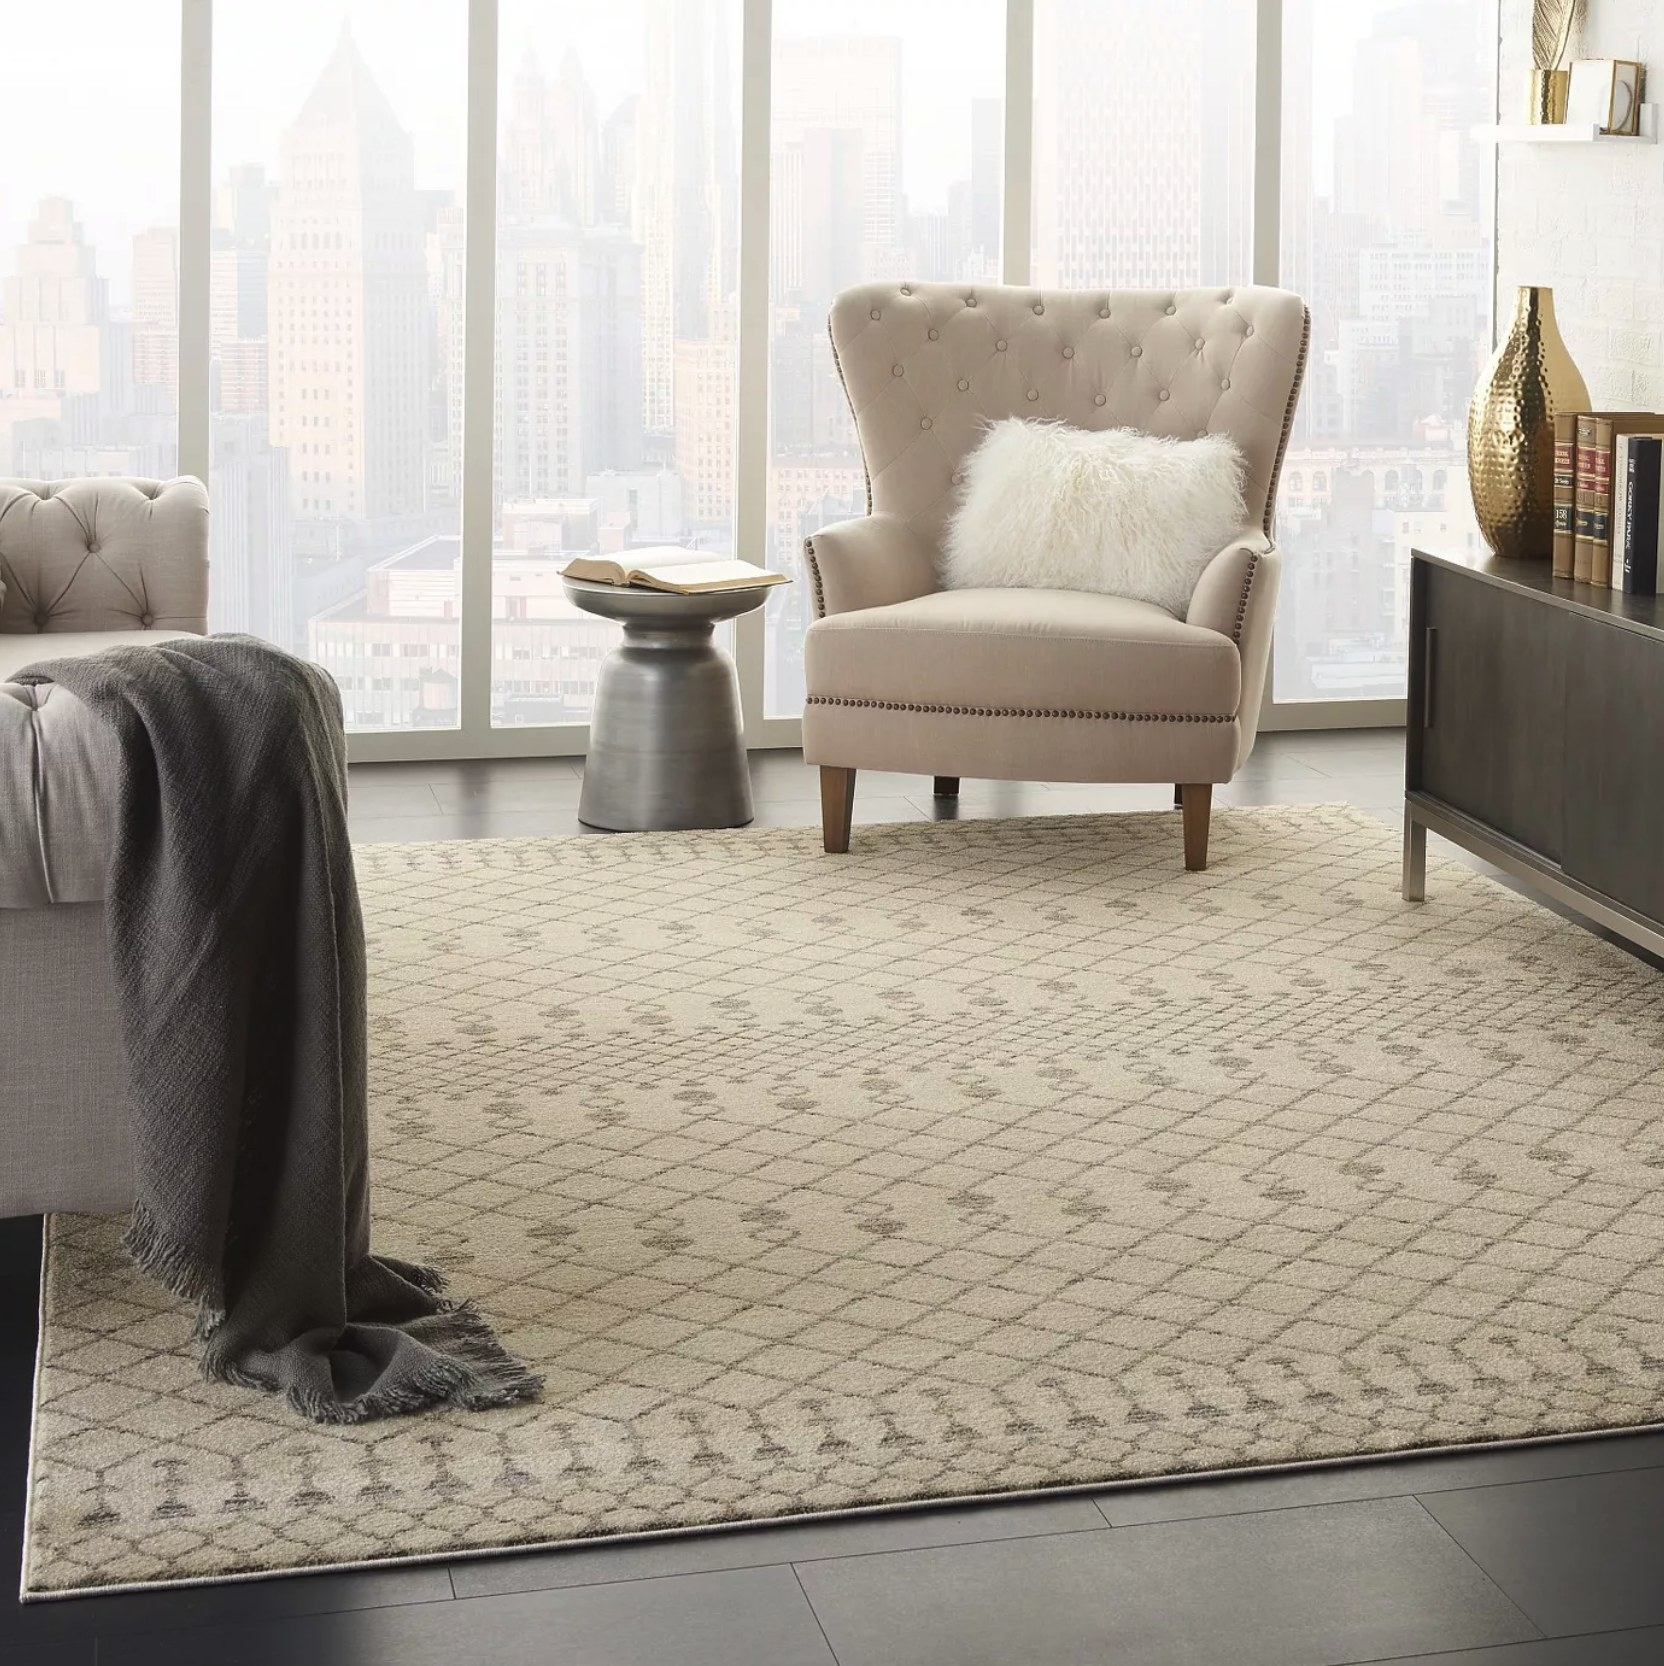 An off-white area rug with a gray Morrocan tribal pattern under a gray couch, a beige armchair, and a dark brown console